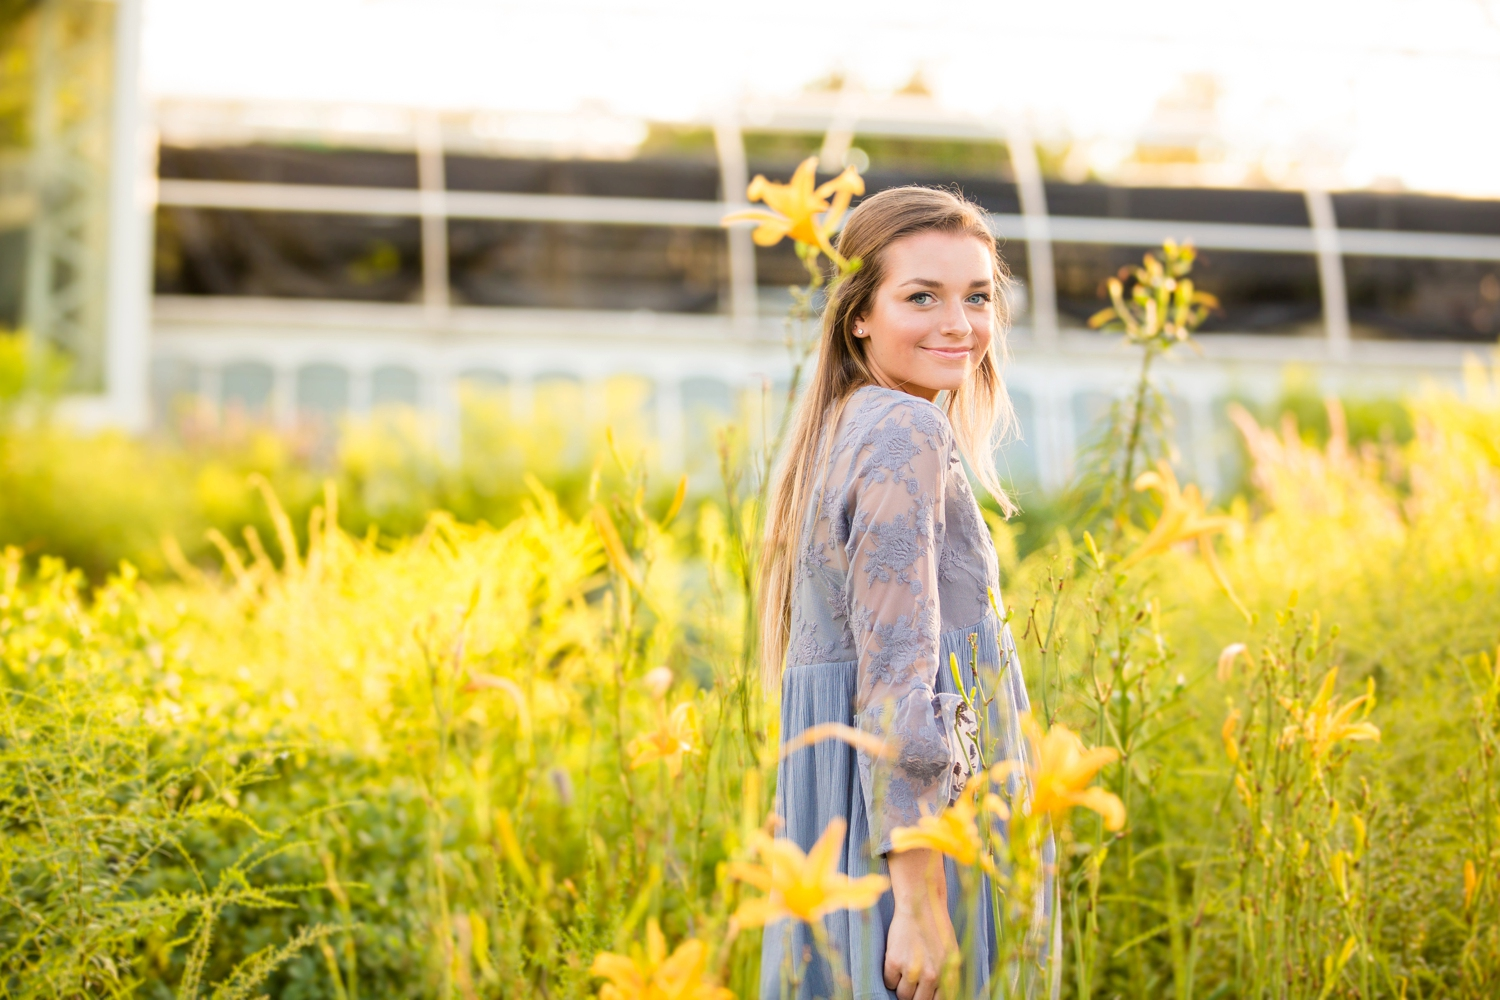 best places to take senior pictures in pittsburgh, places to take senior pictures in pittsburgh, phipps conservatory senior photos, pittsburgh senior photographer